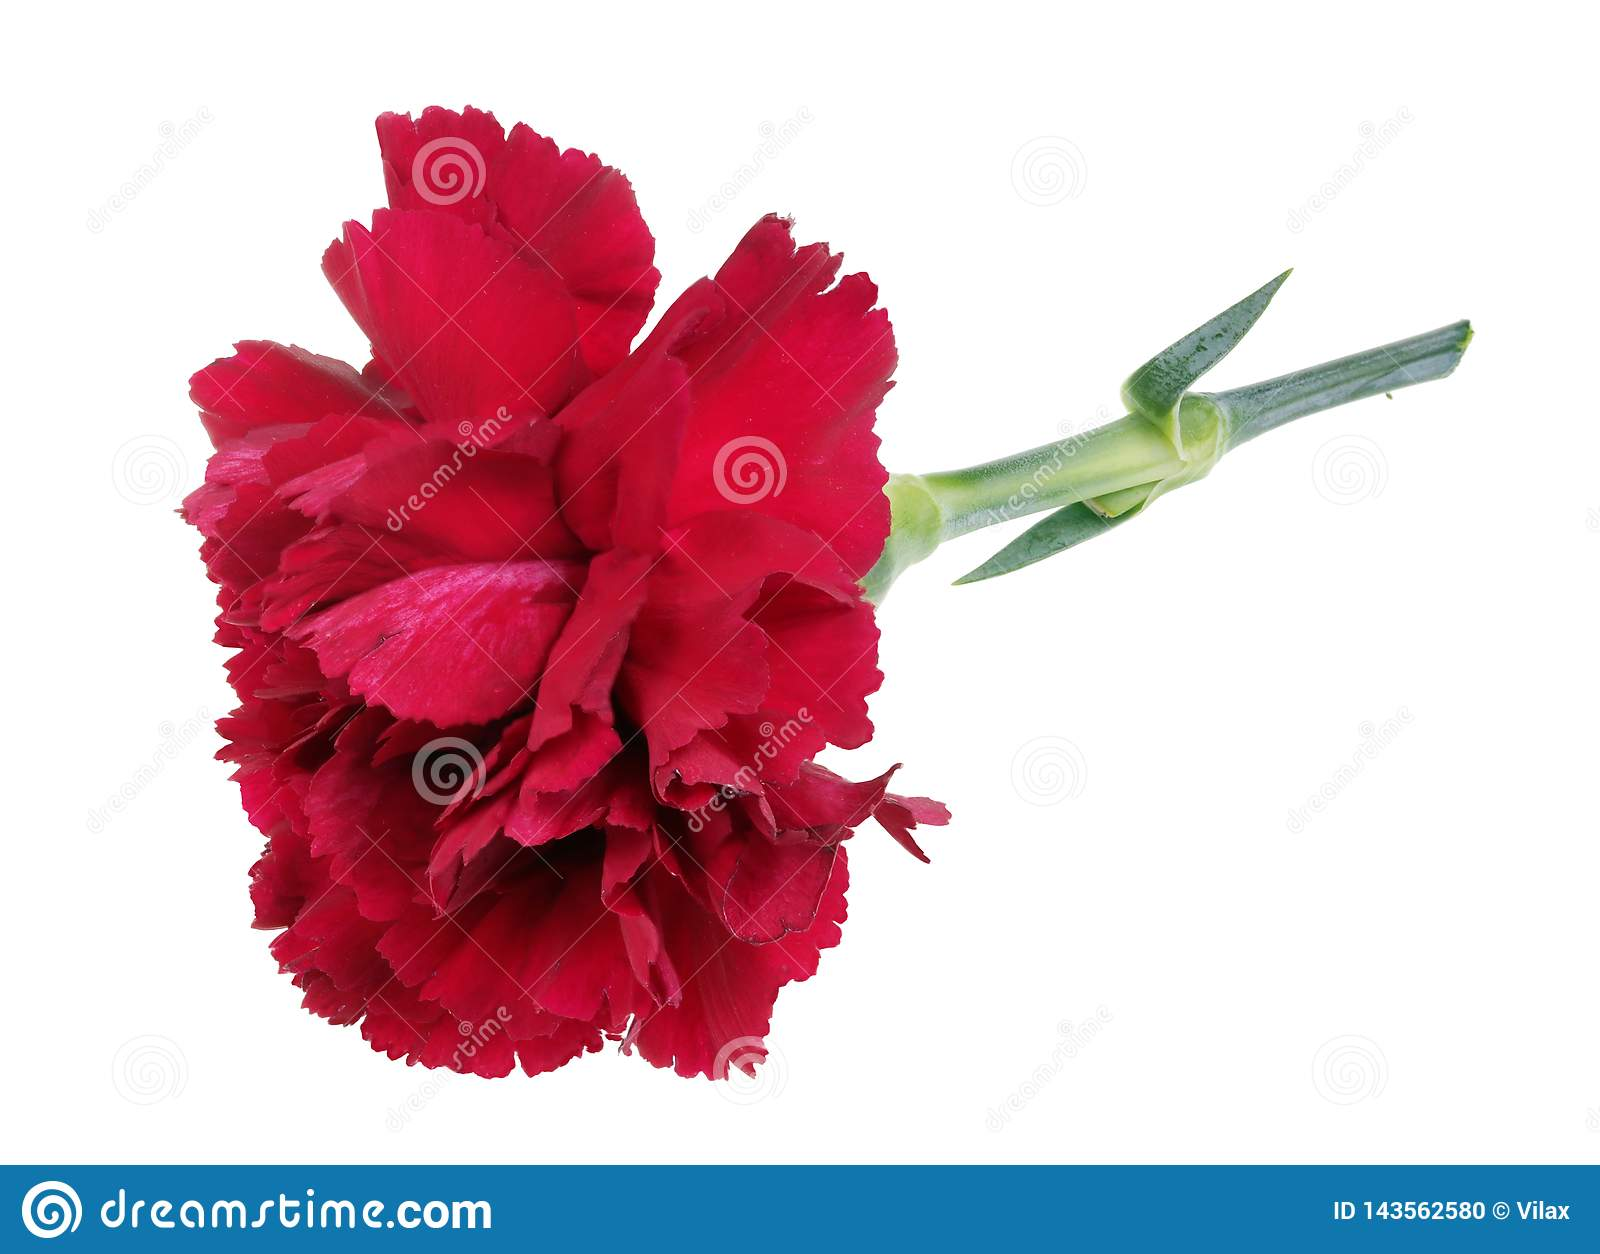 Very small perfect lonely red carnation flower lie on table isolated macro